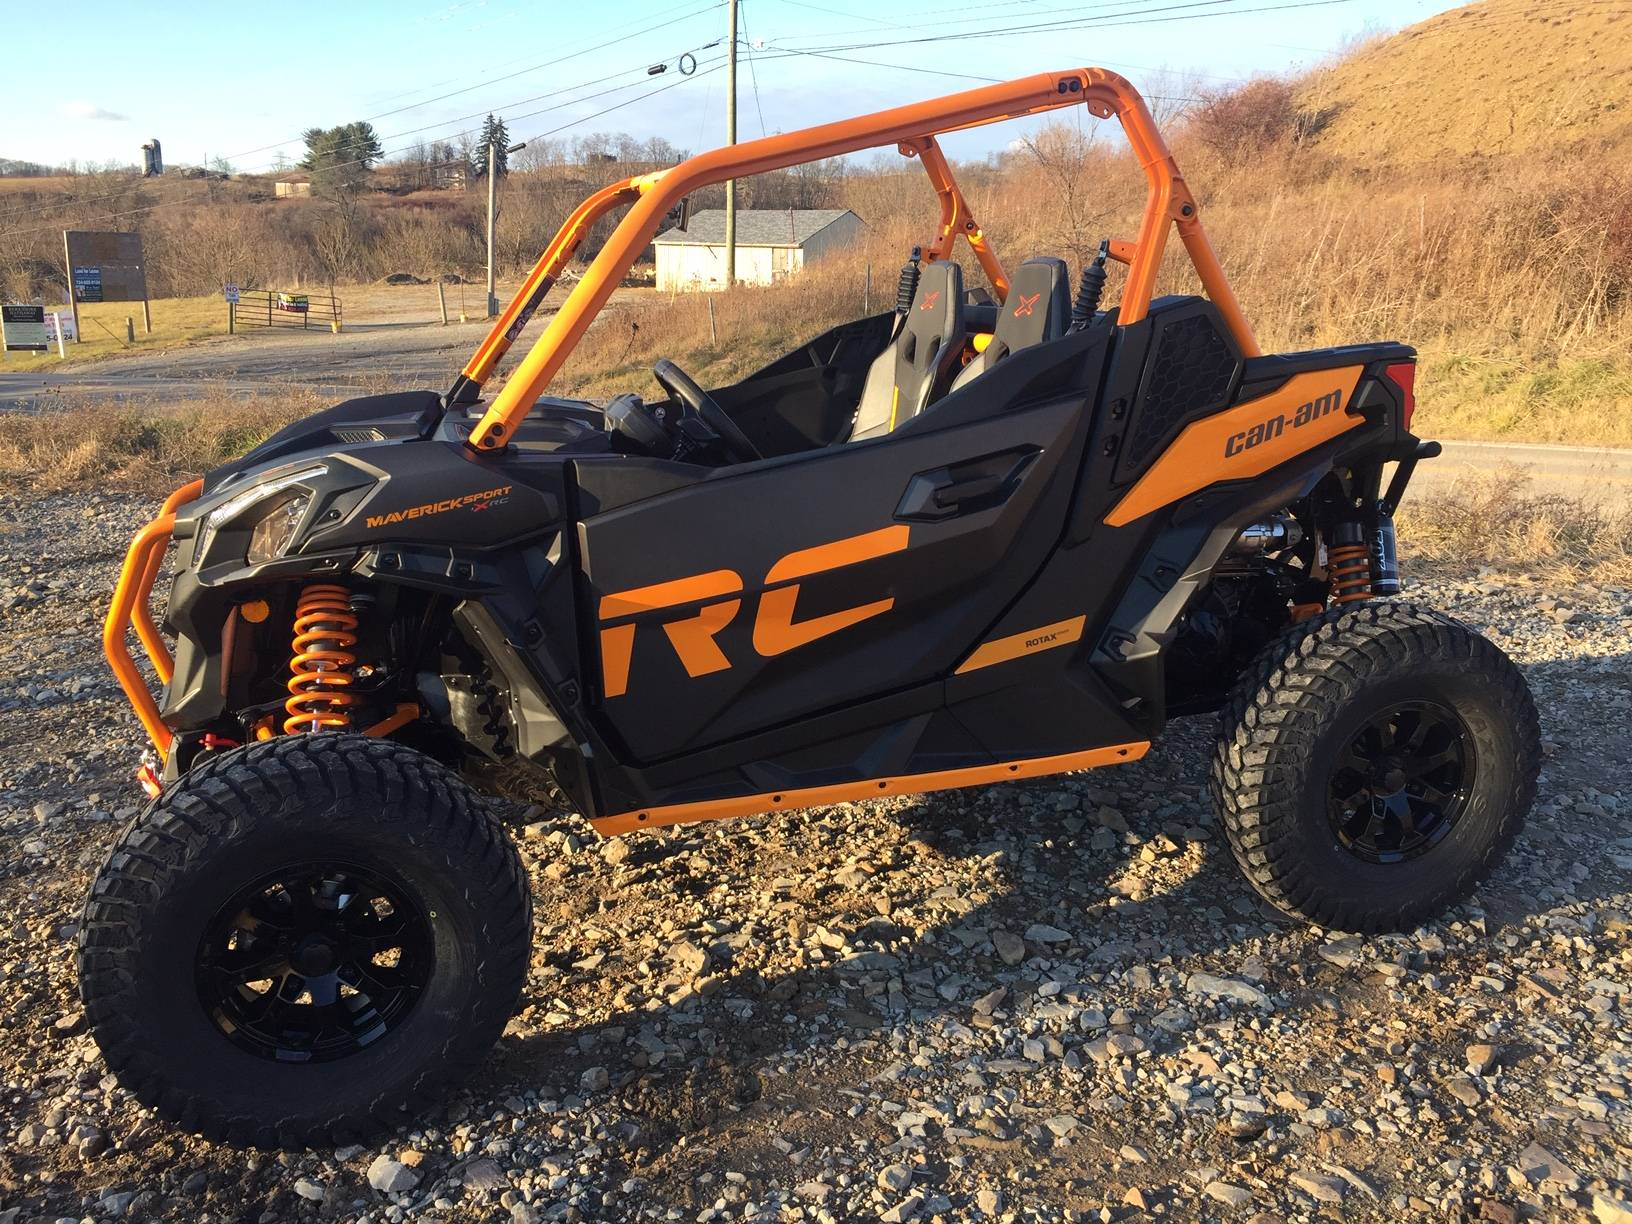 2020 Can-Am Maverick Sport X RC 1000R in Claysville, Pennsylvania - Photo 1